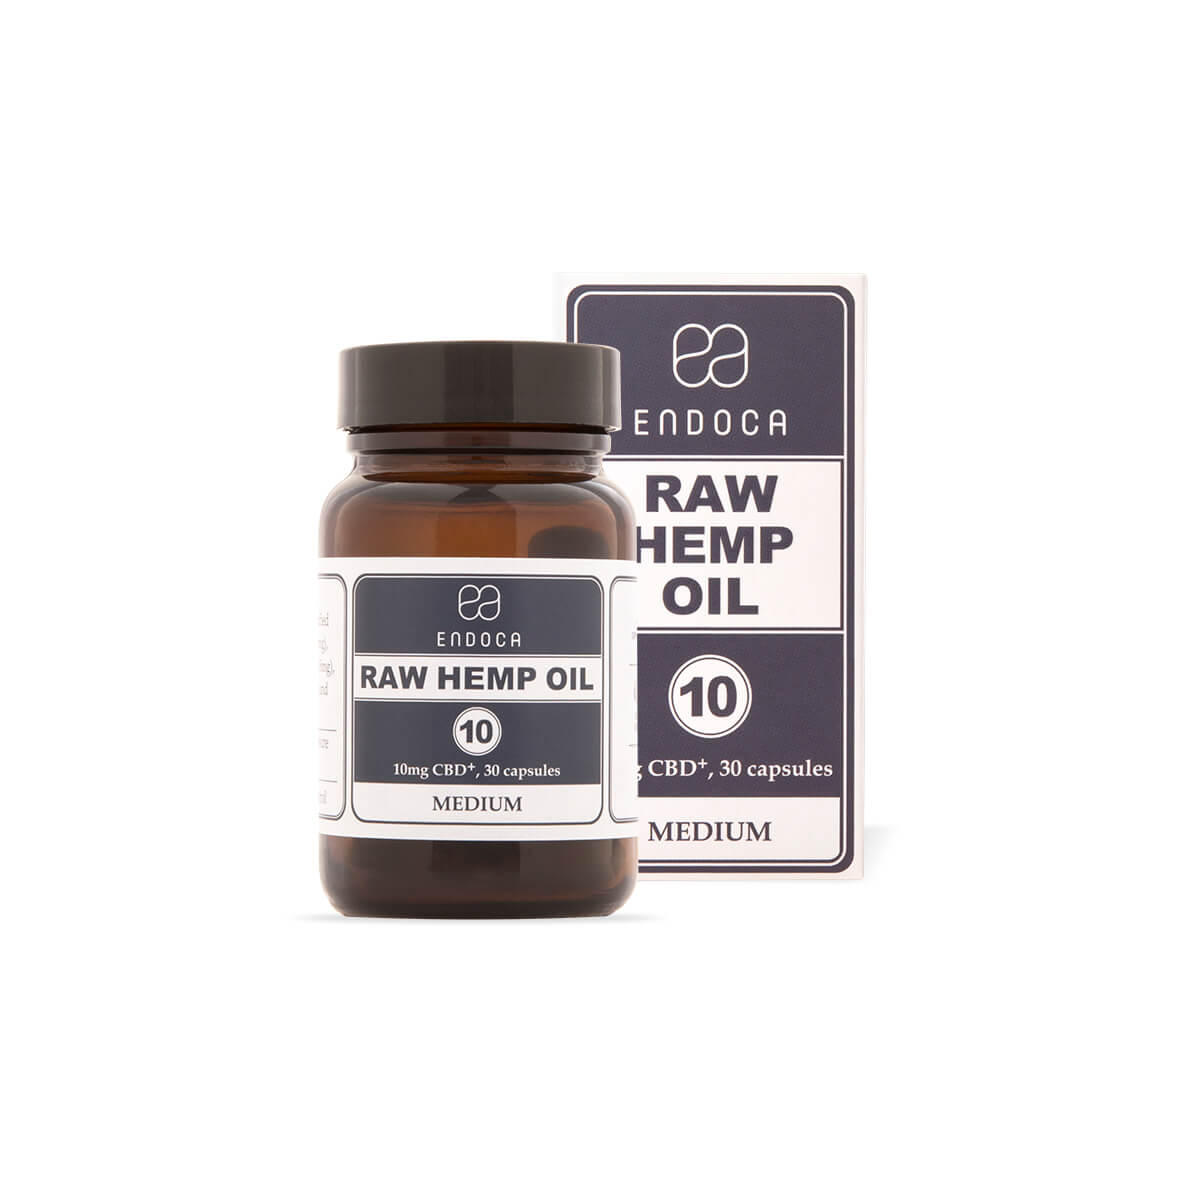 RAW Hemp Oil Capsules 300mg - 1200mg of CBD+CBDa